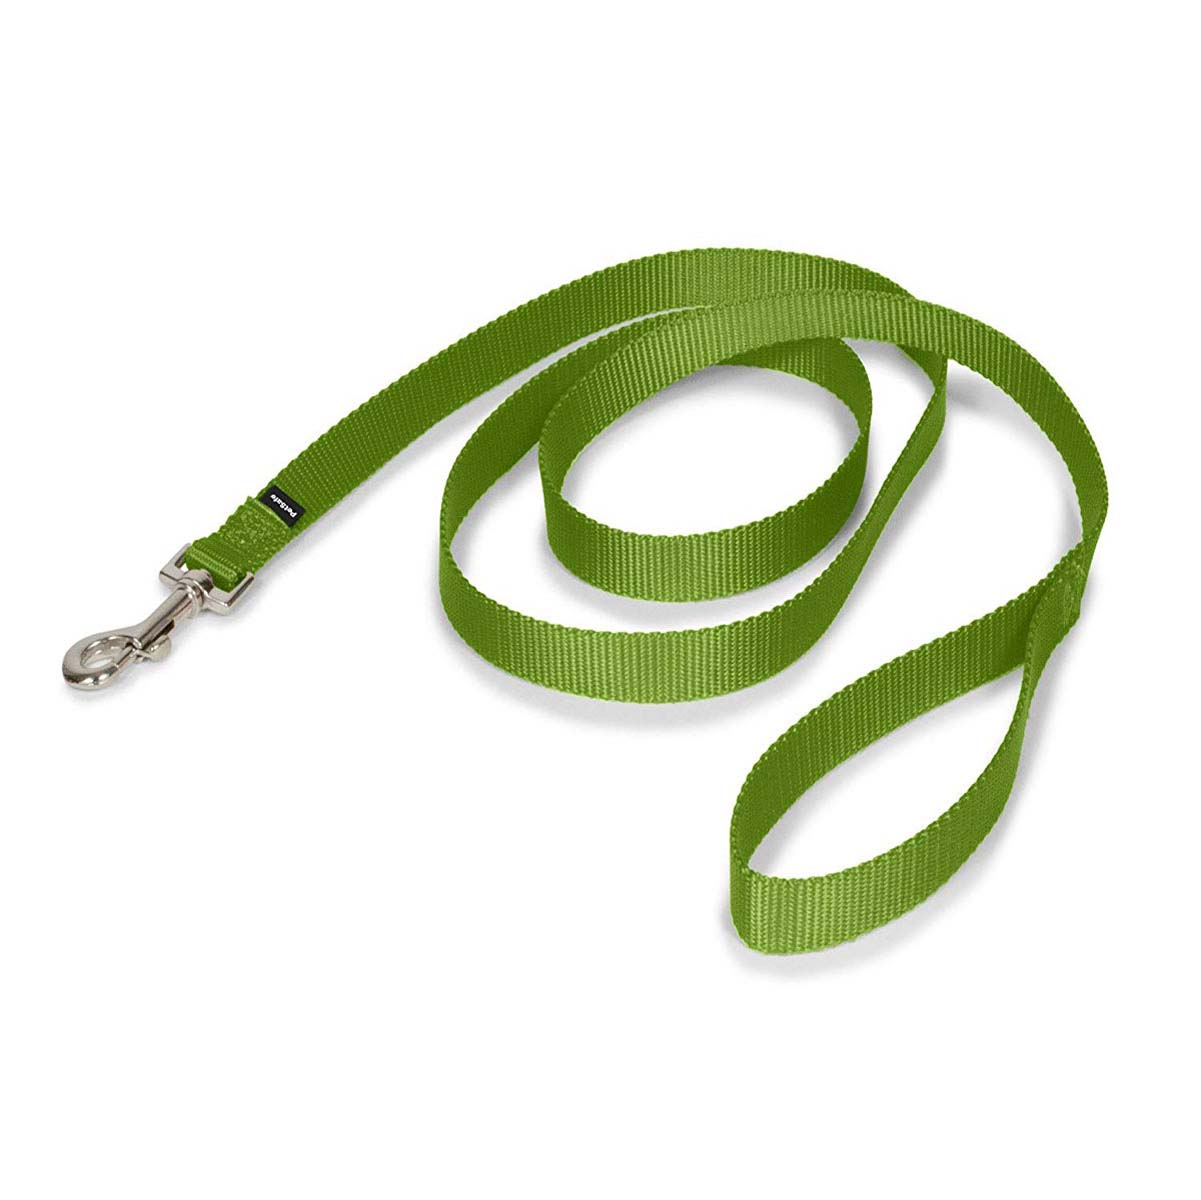 Buy Nylon Dog Leash 3/4